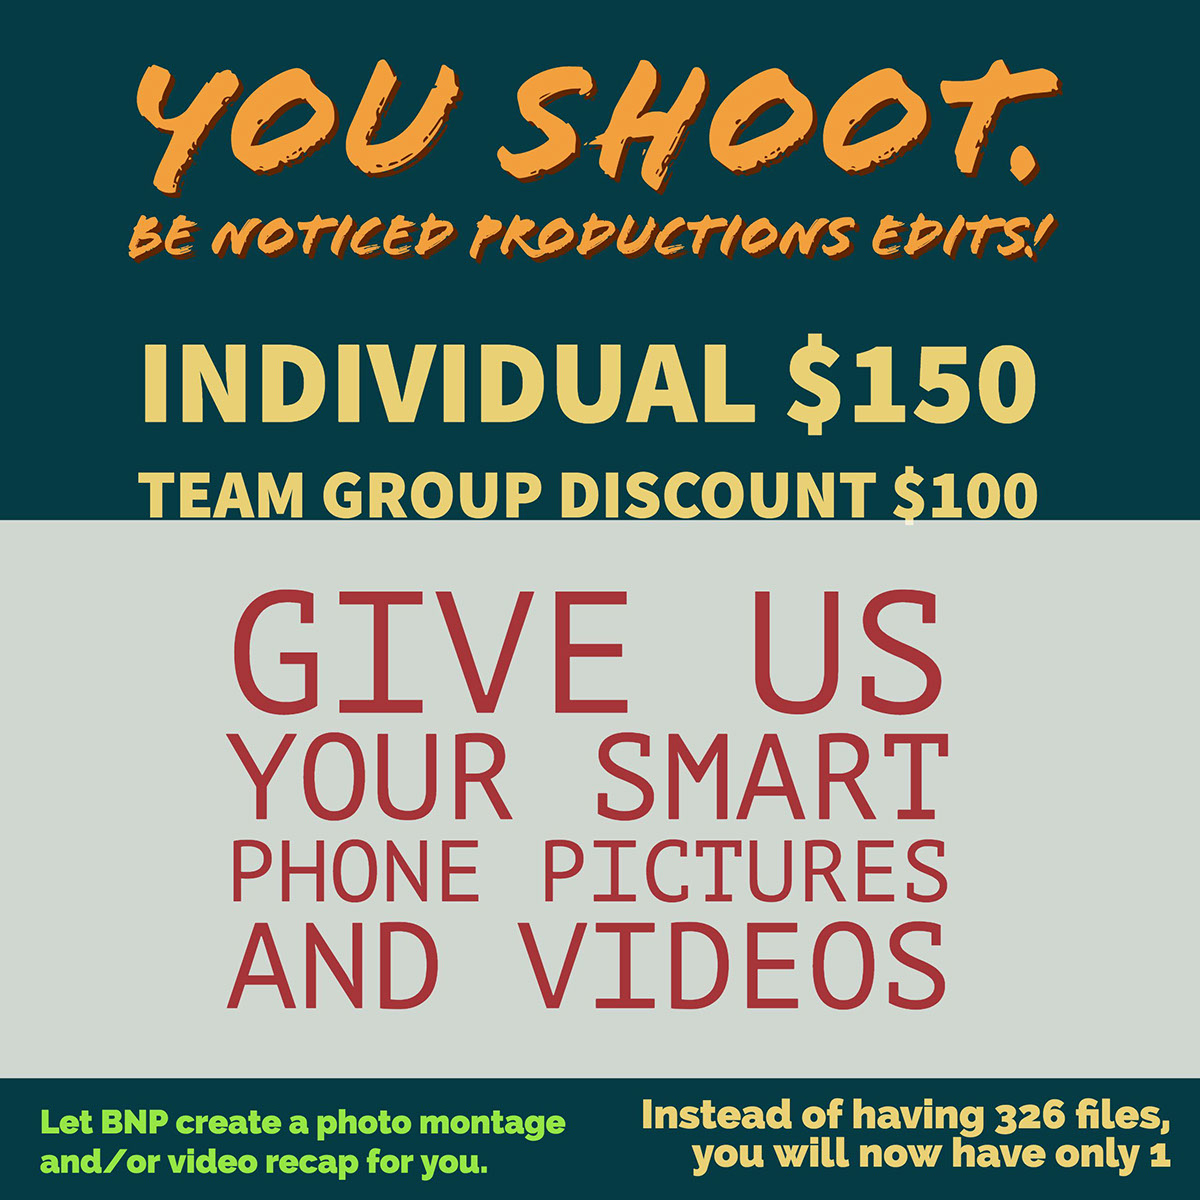 Give us your Smart Phone pictures and videos